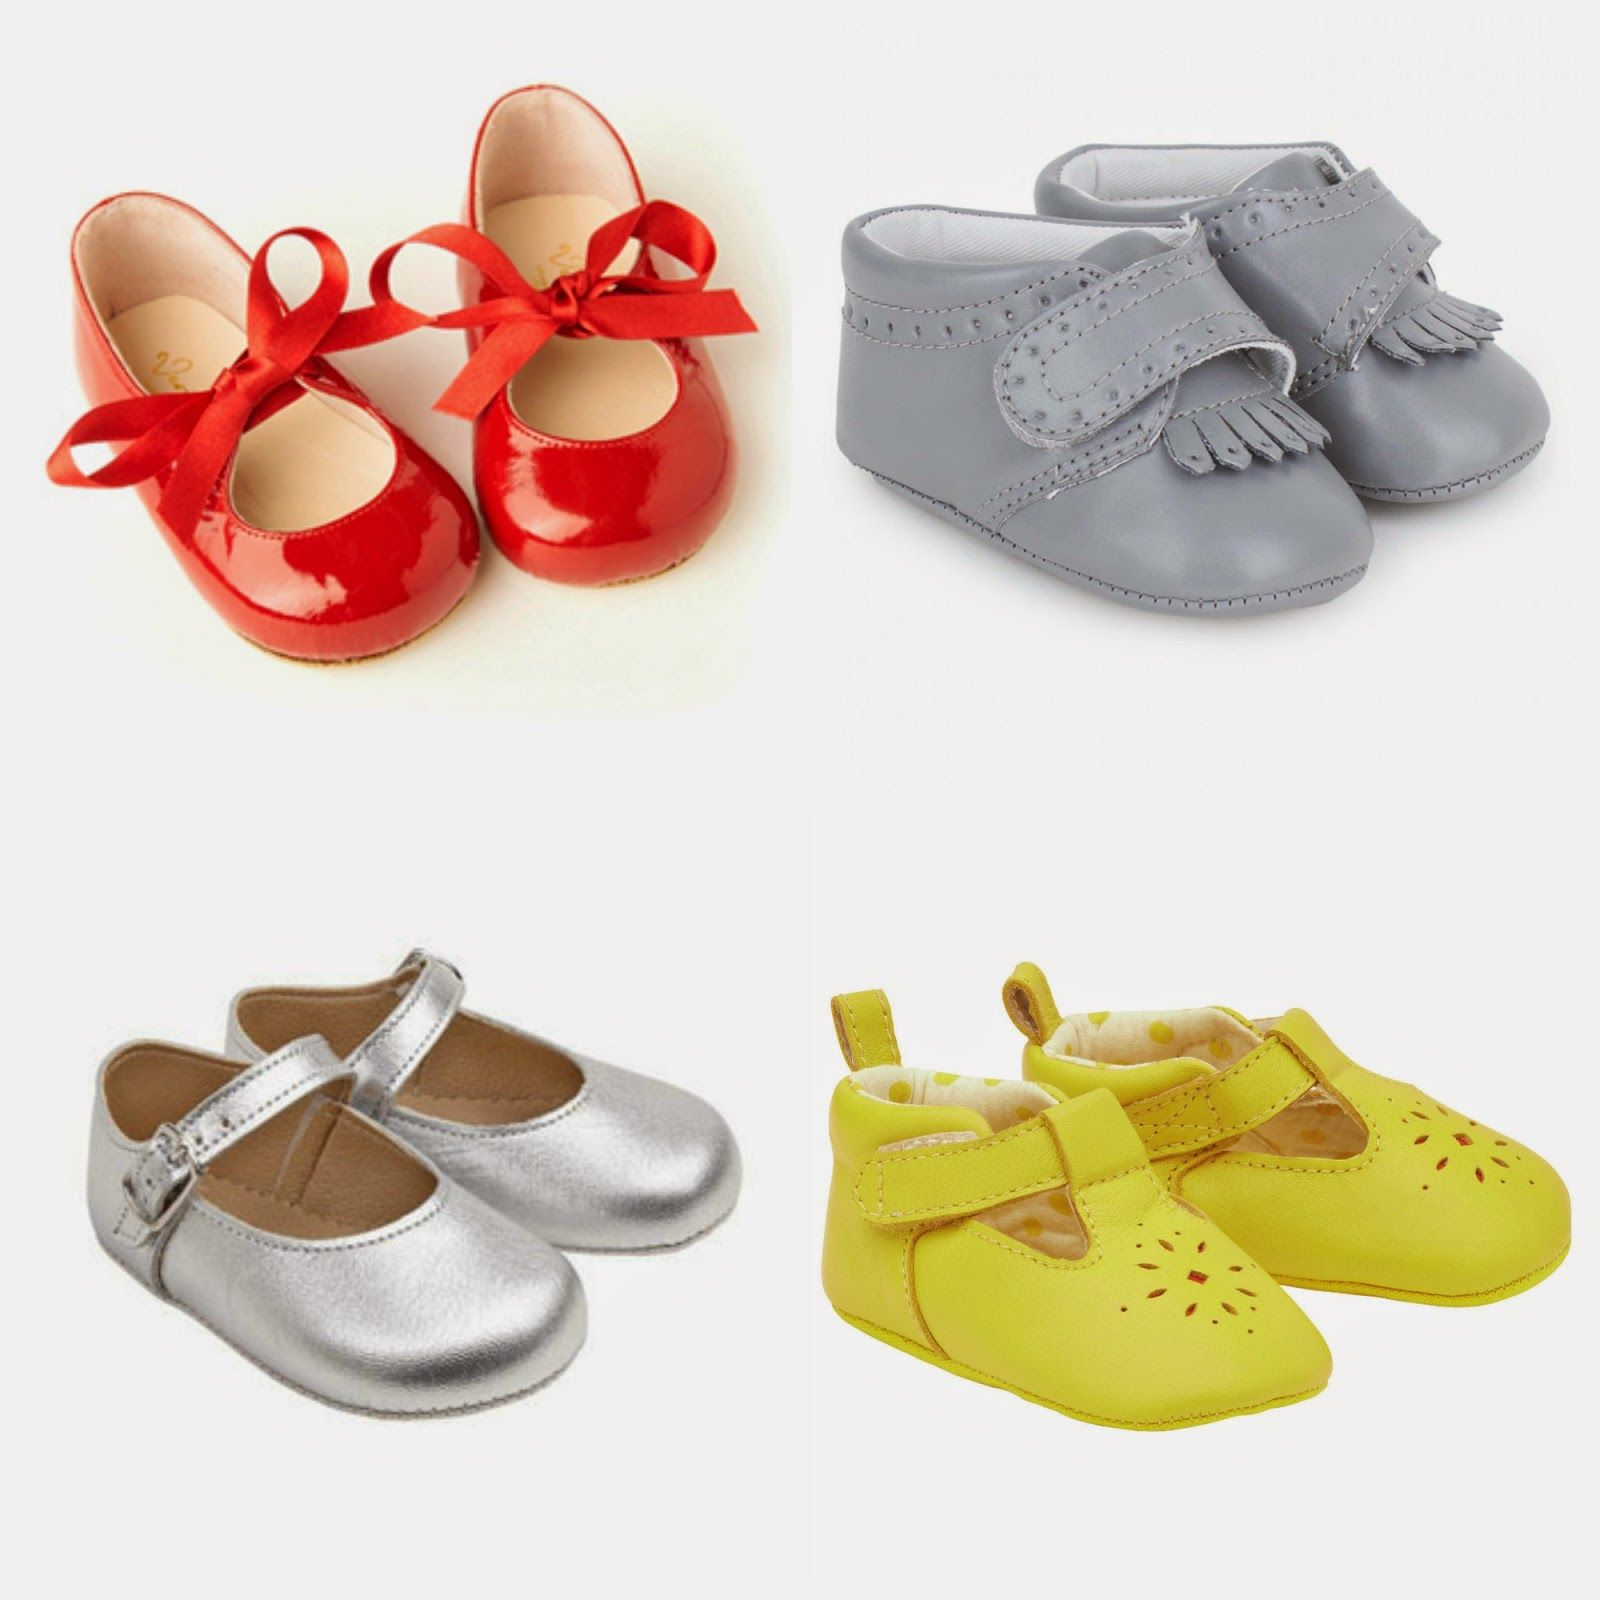 241774939ebb47 First baby pram shoes from Clarks - and my pick of the rest!